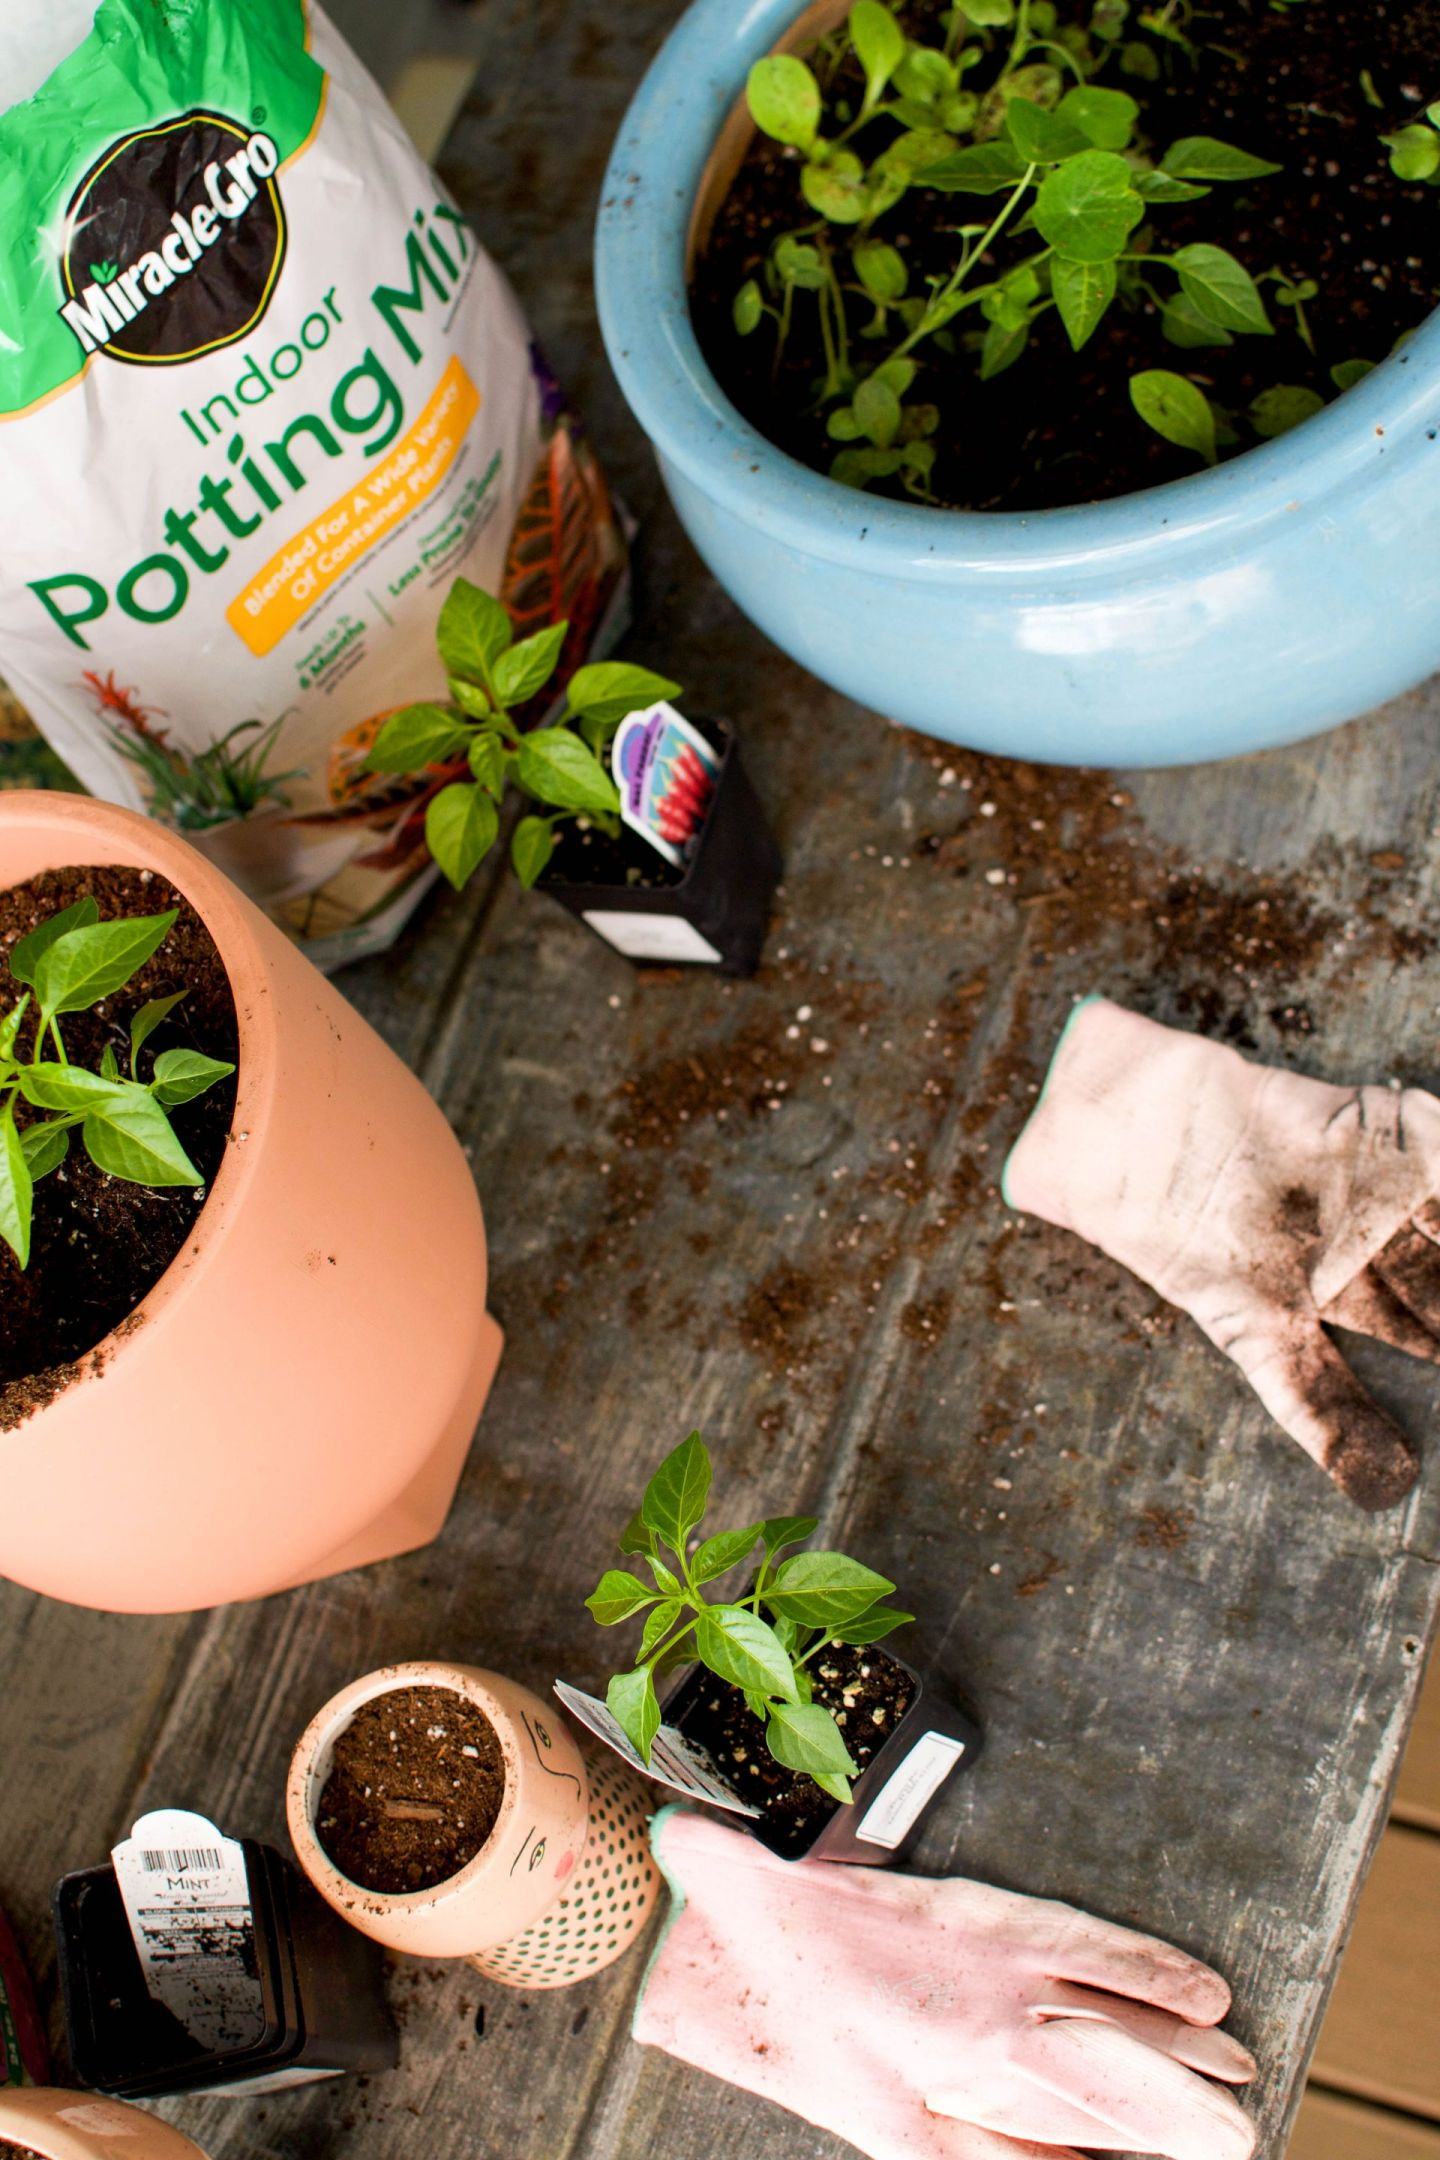 where to find outdoor garden plants in dc - plant stores dc